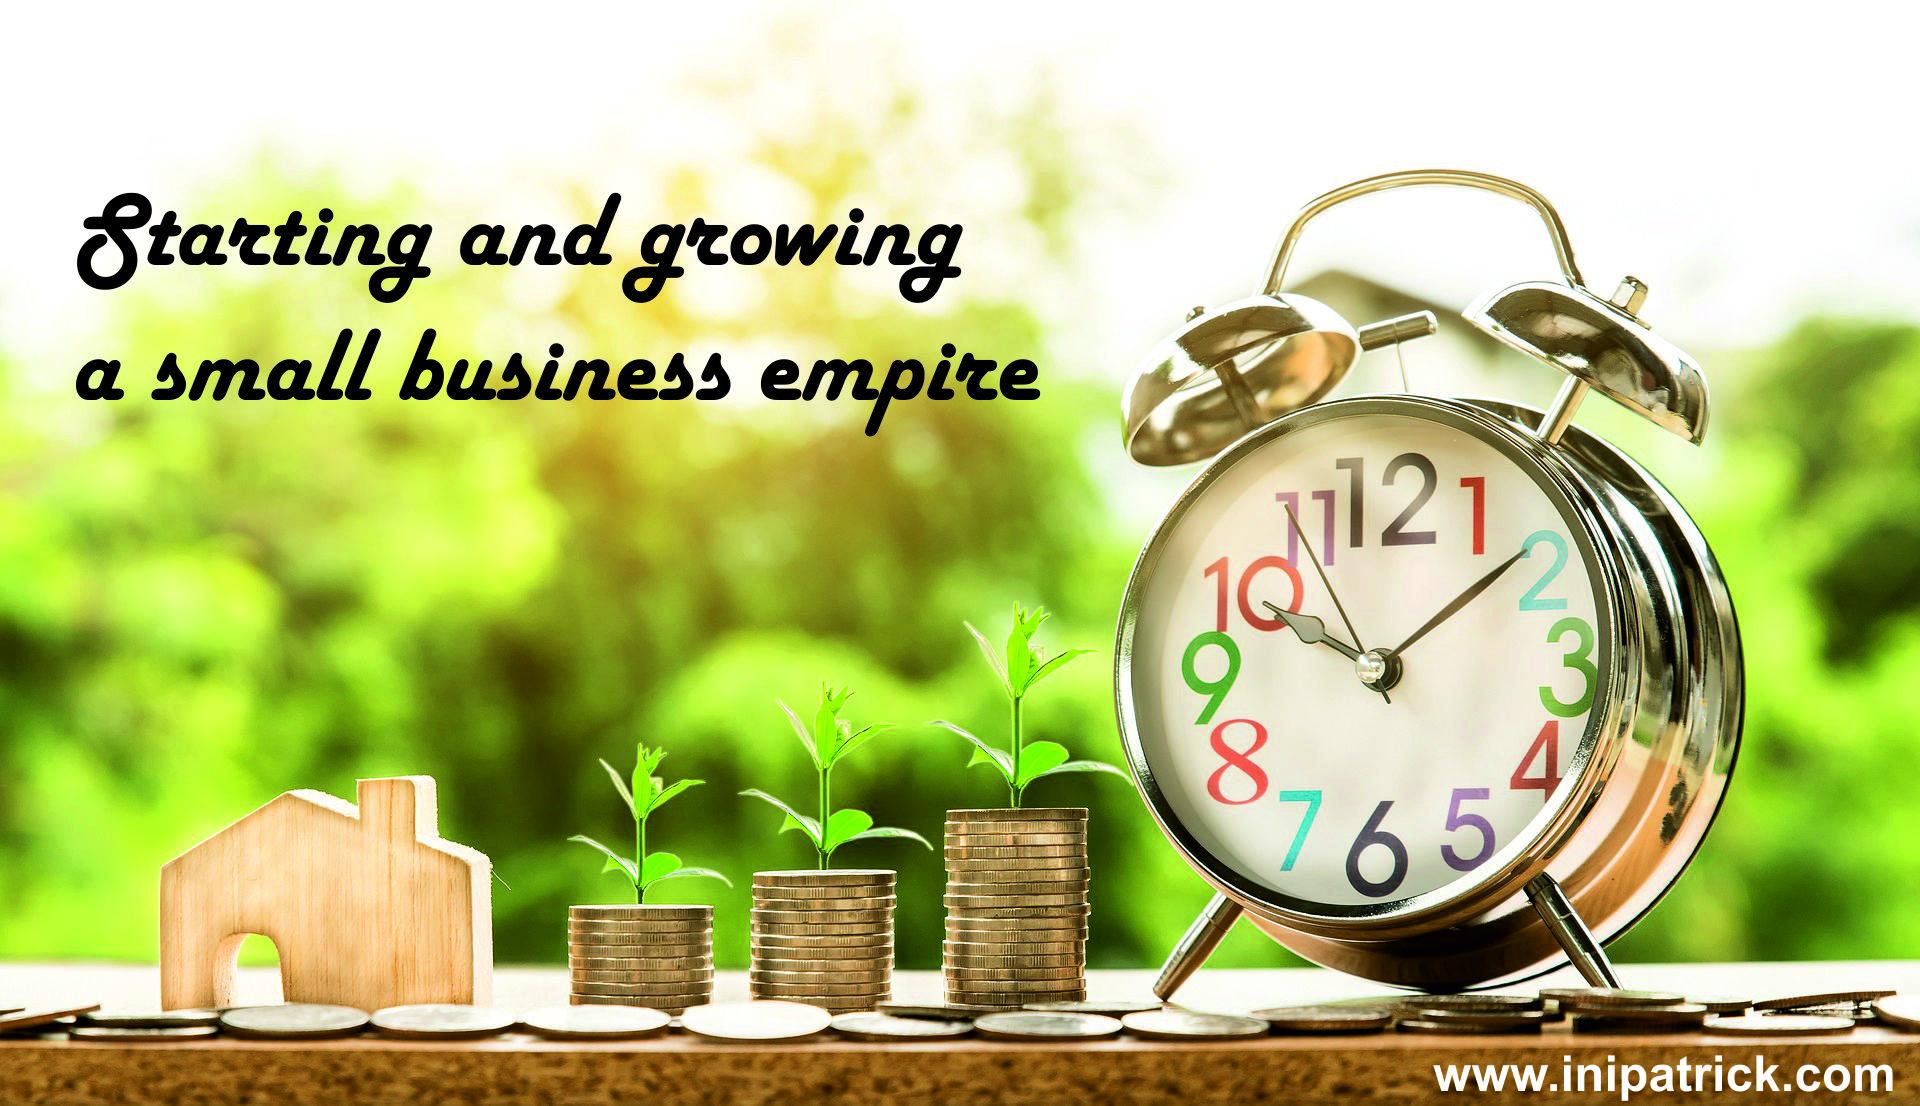 How to Run a Small Business enterprise